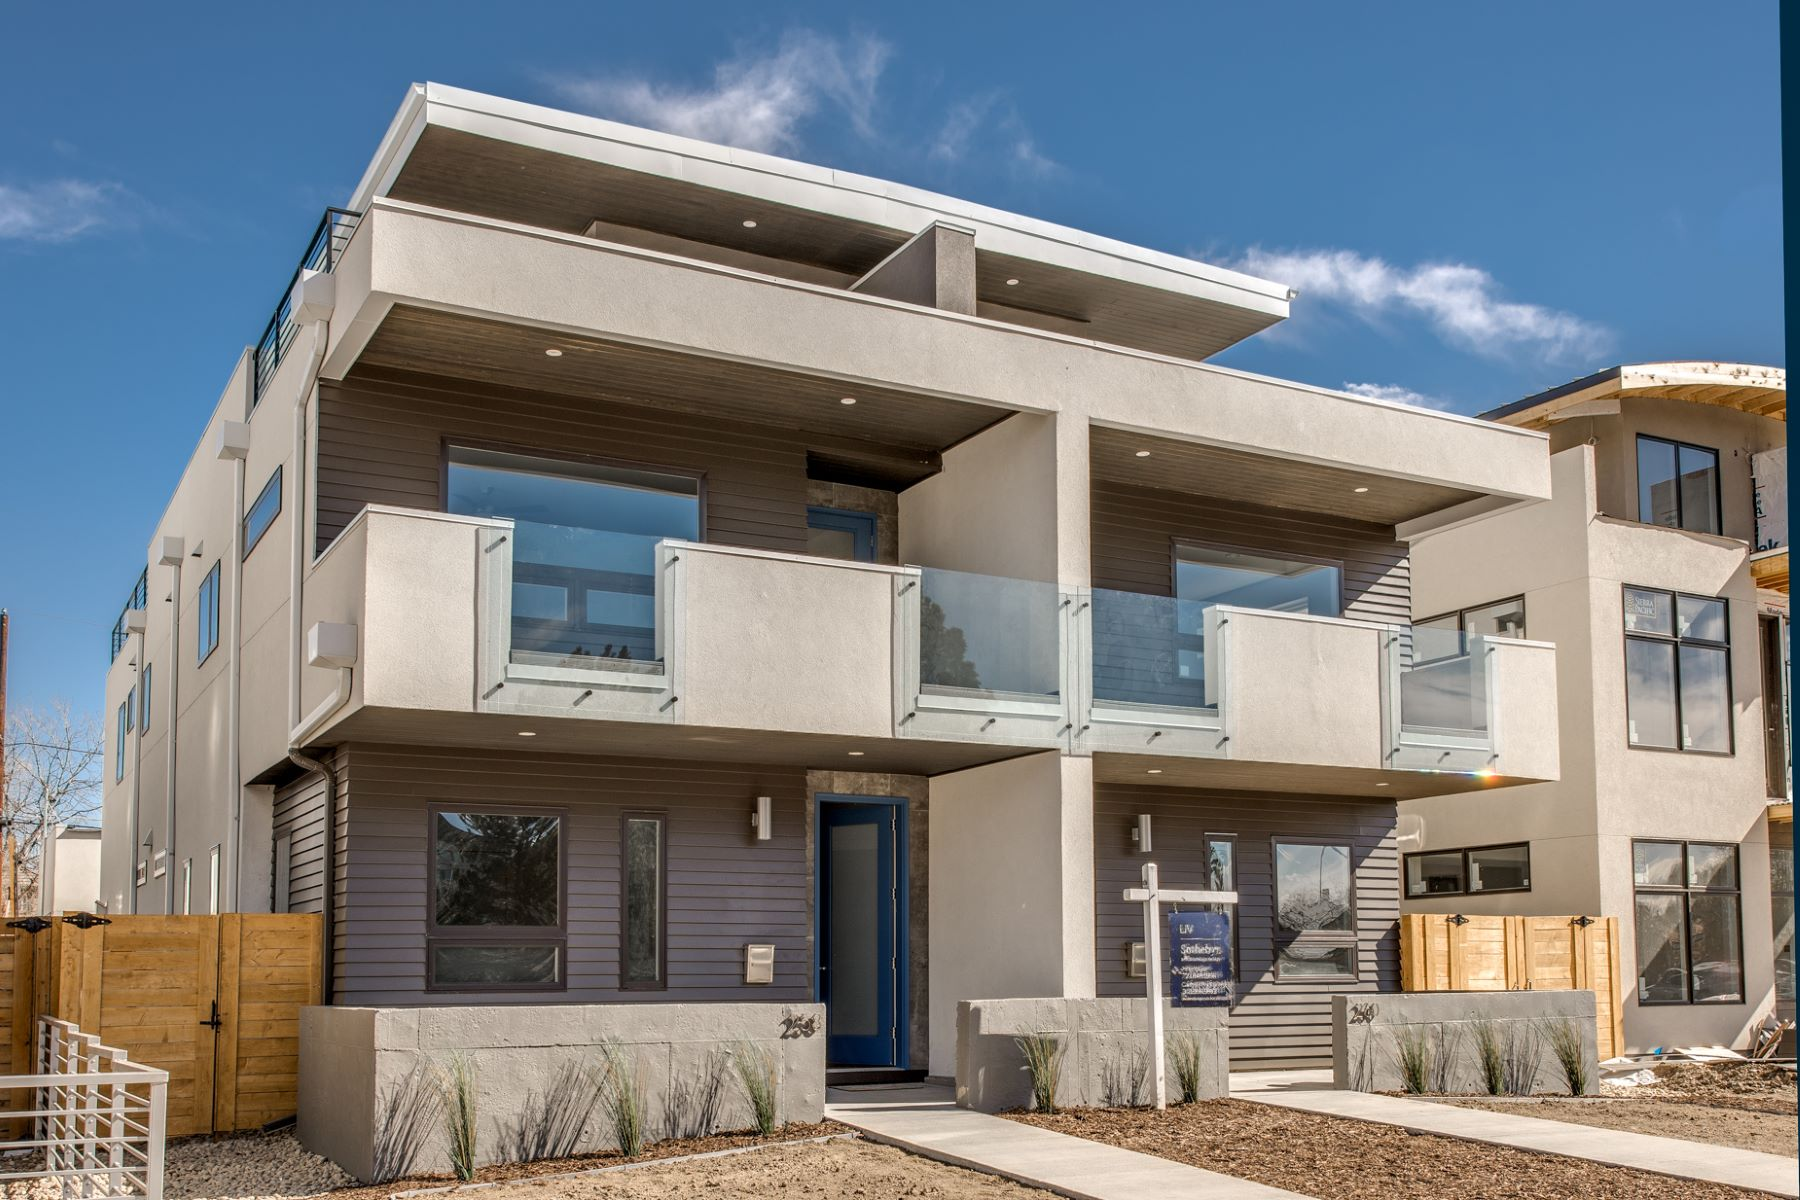 Single Family Home for Sale at Urban Modern New Construction 260 South Madison Street Cherry Creek, Denver, Colorado, 80206 United States